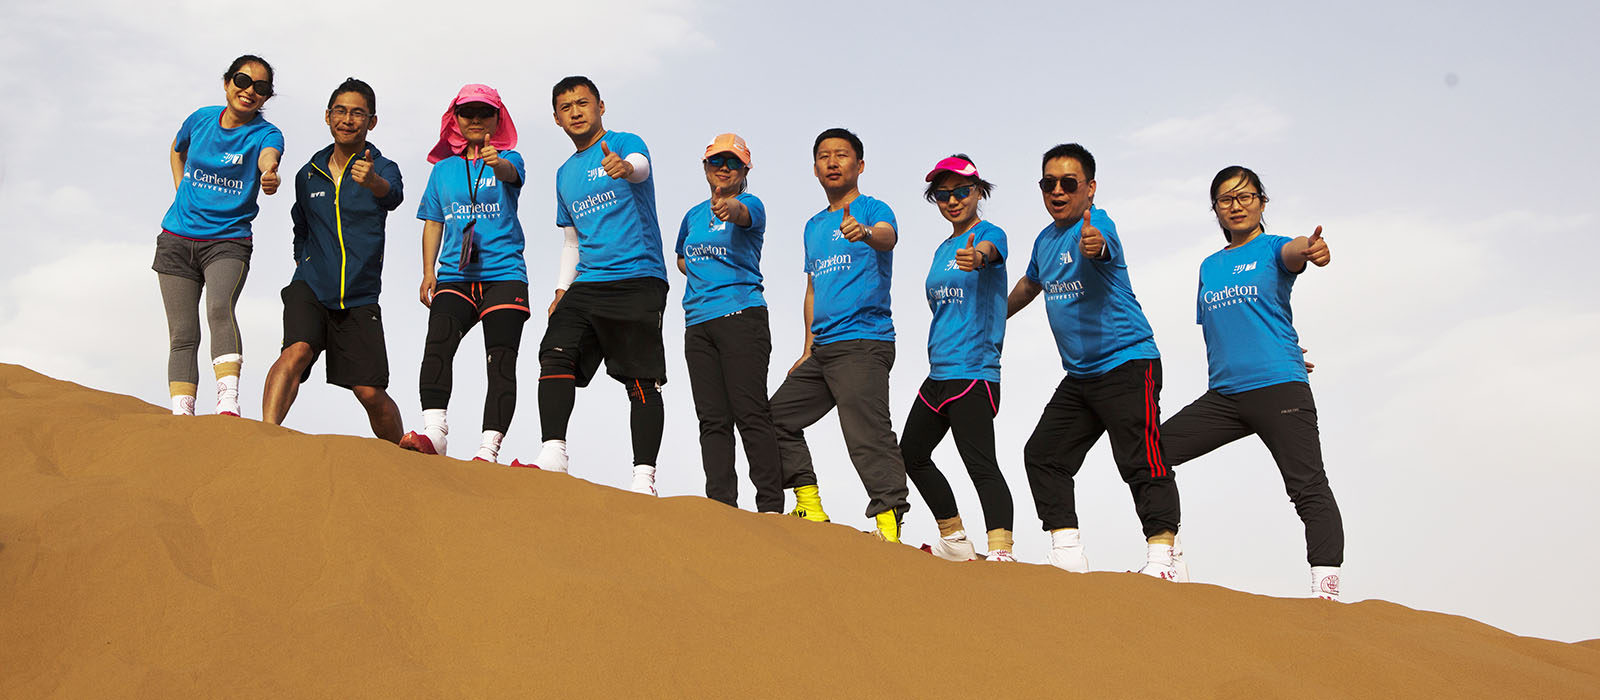 The Sprott MBA Shanghai student team lined up on a sand dune at the 2018 Asia-Pacific Desert Challenge in the Gobi Desert.